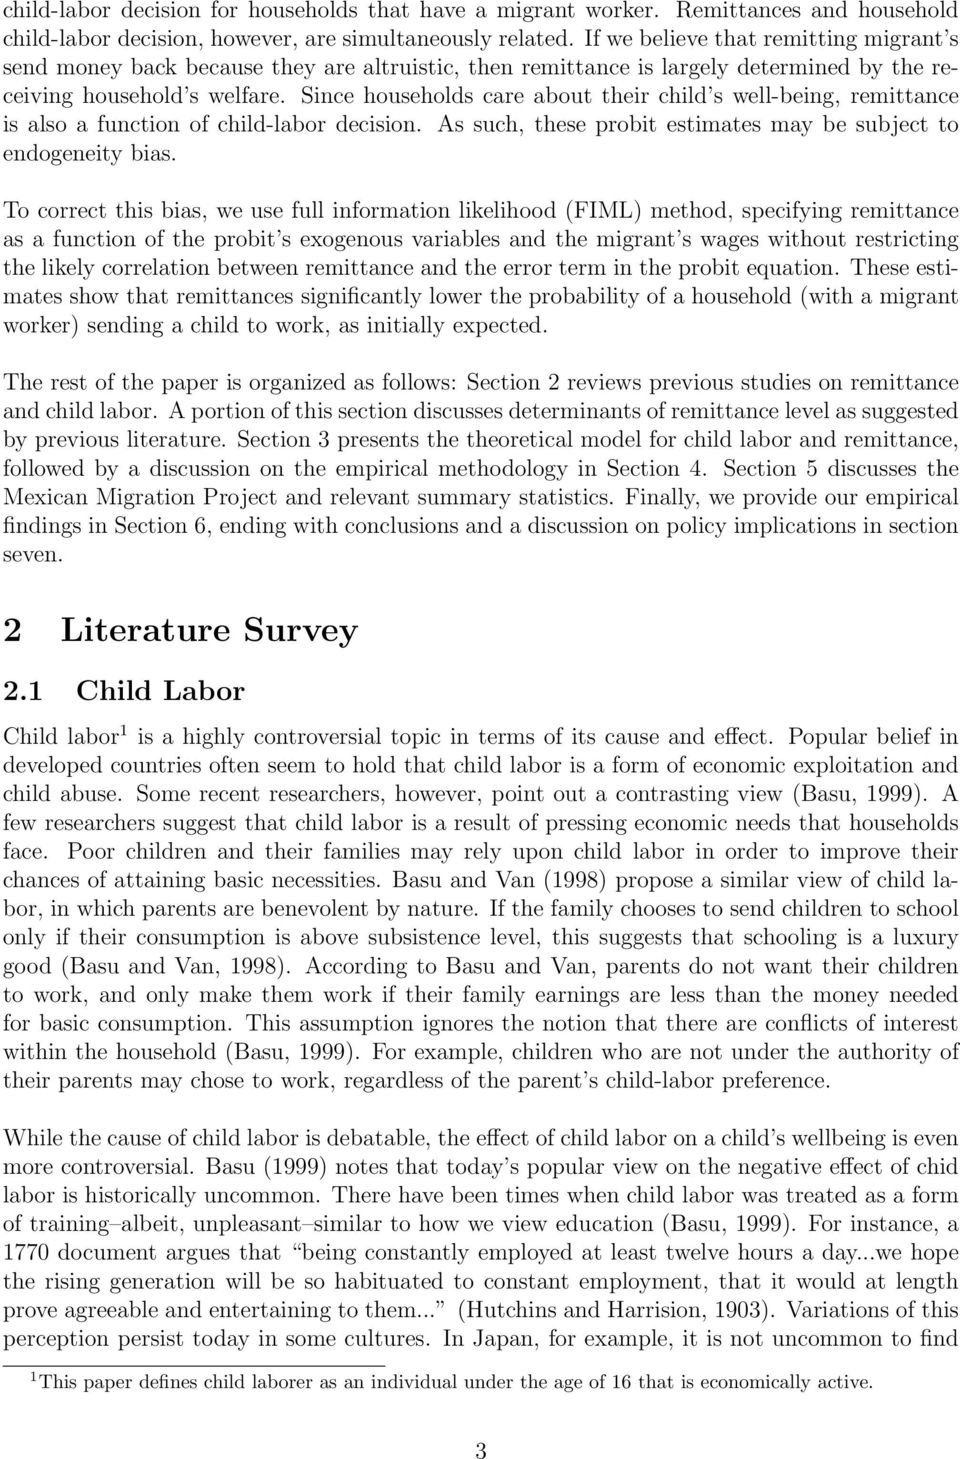 need essay child labour essay on child labour in hindi